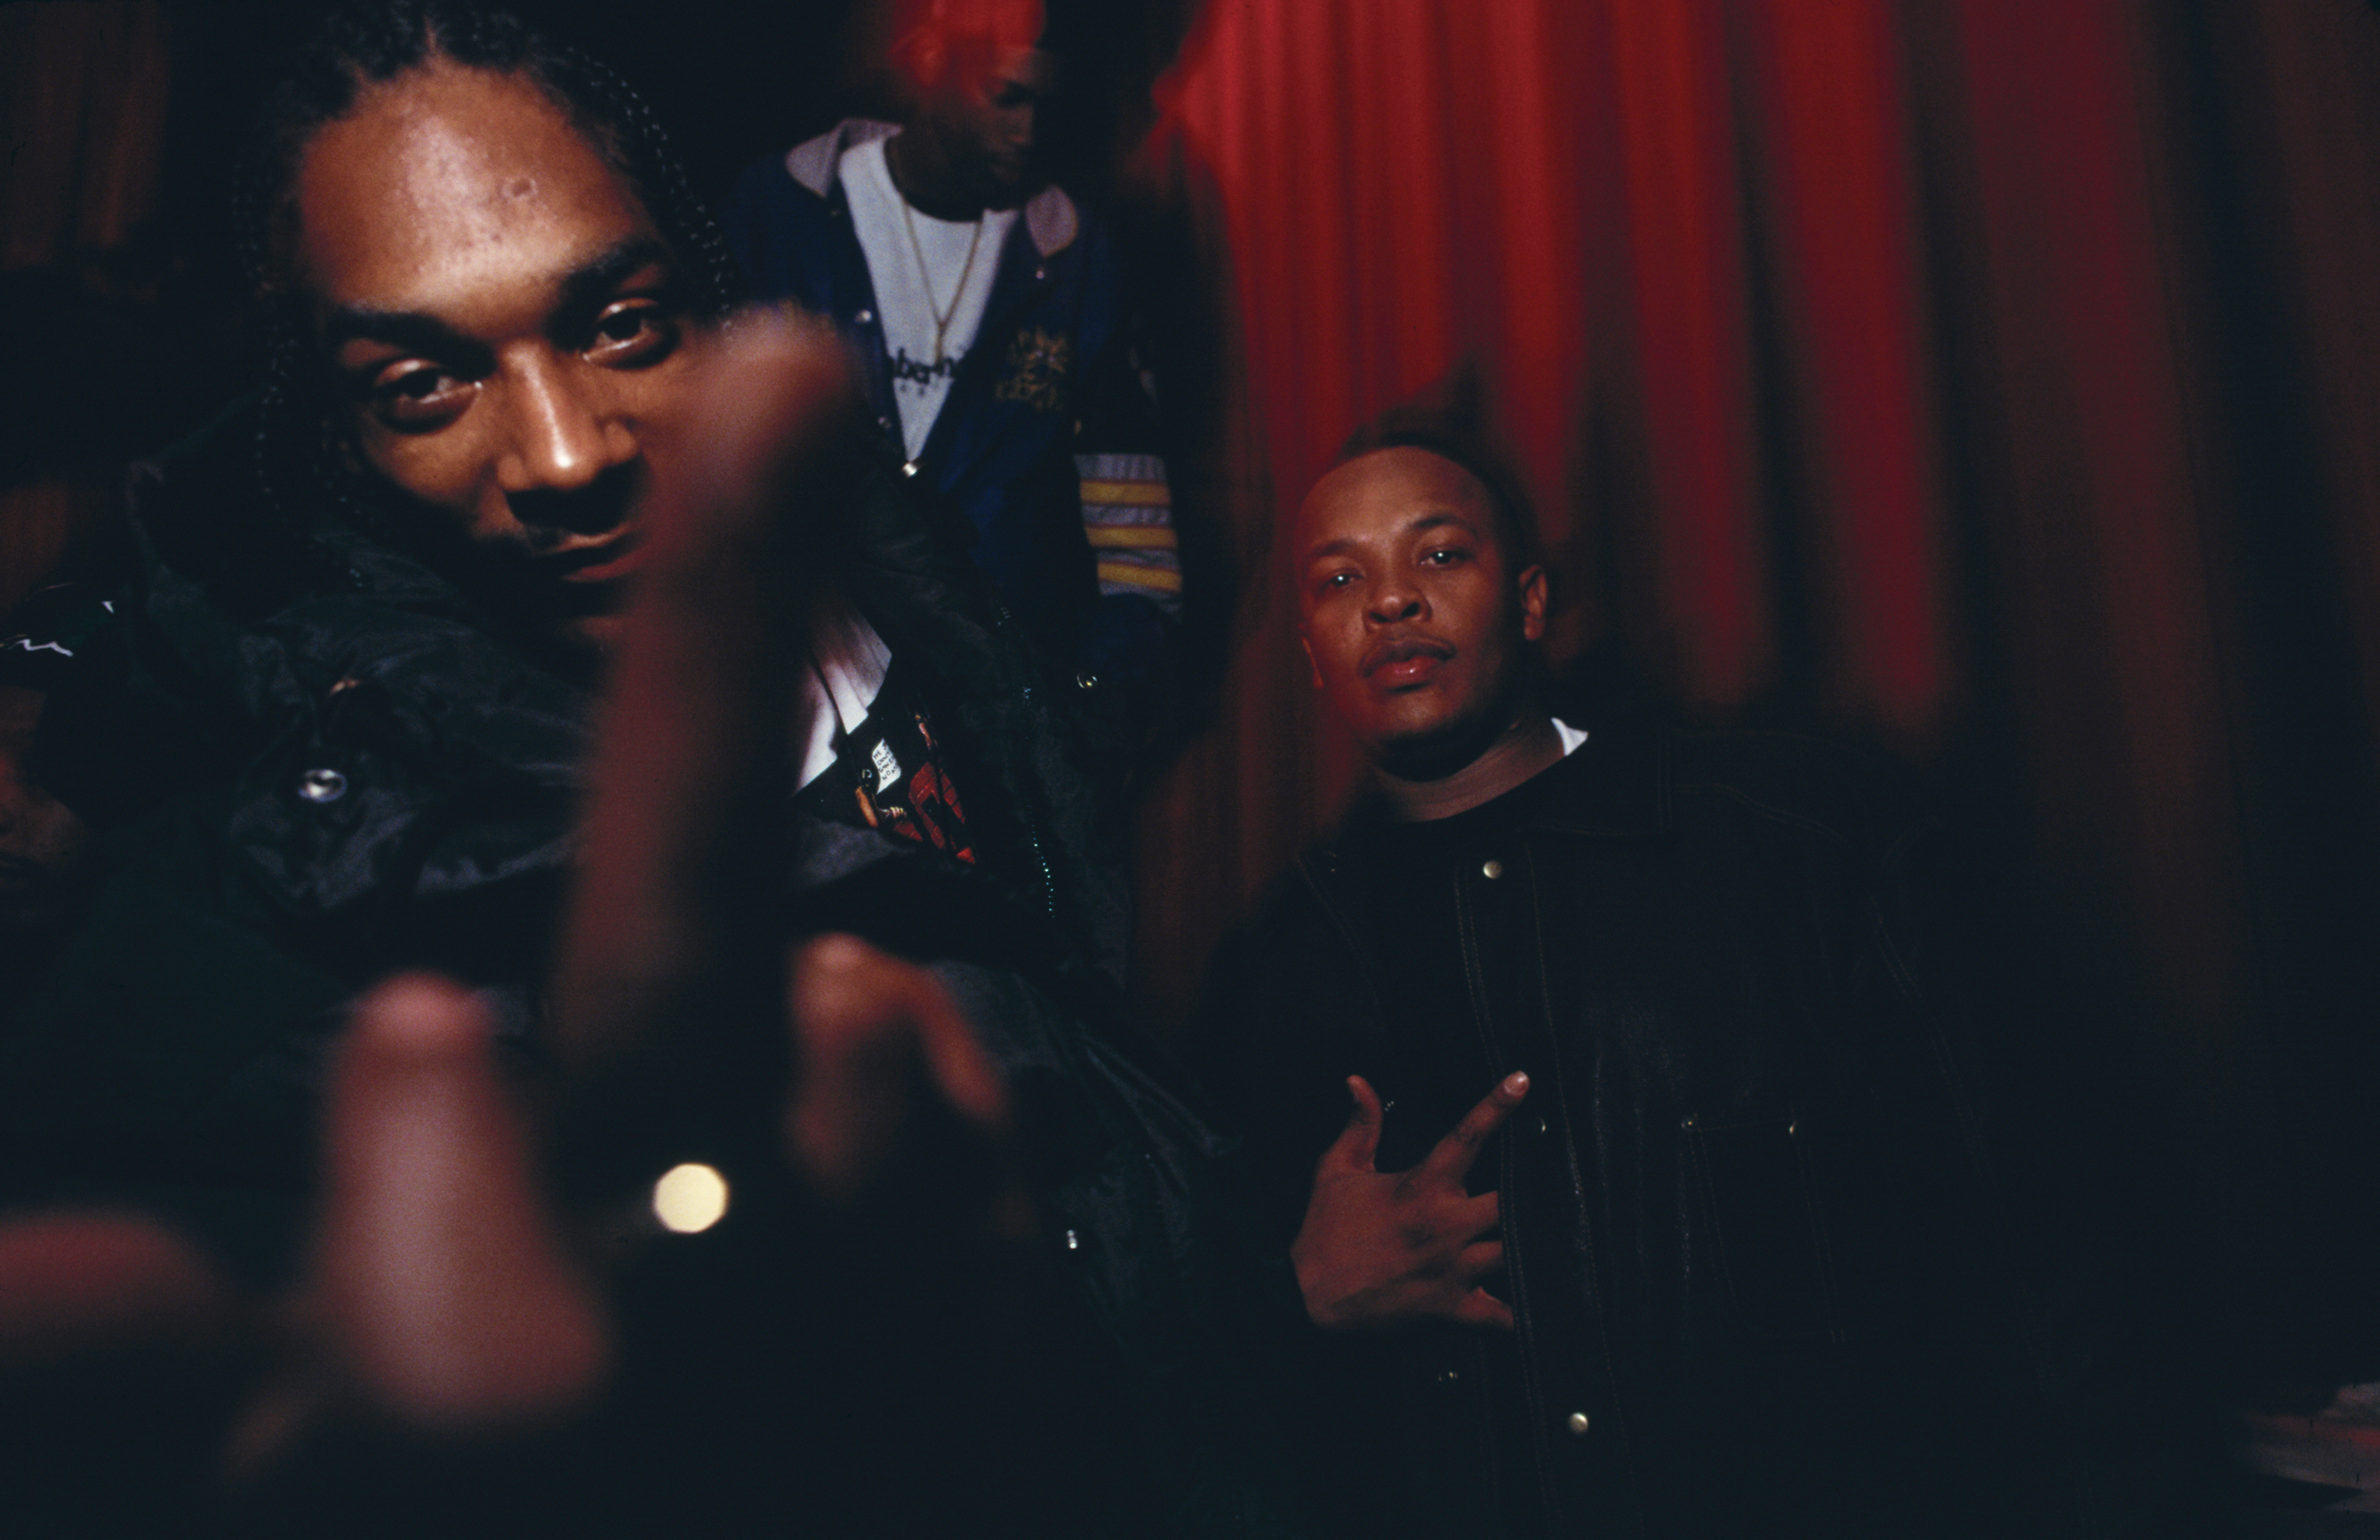 party given by interscopedeath row records for snoop doggy dogg record murder was the case